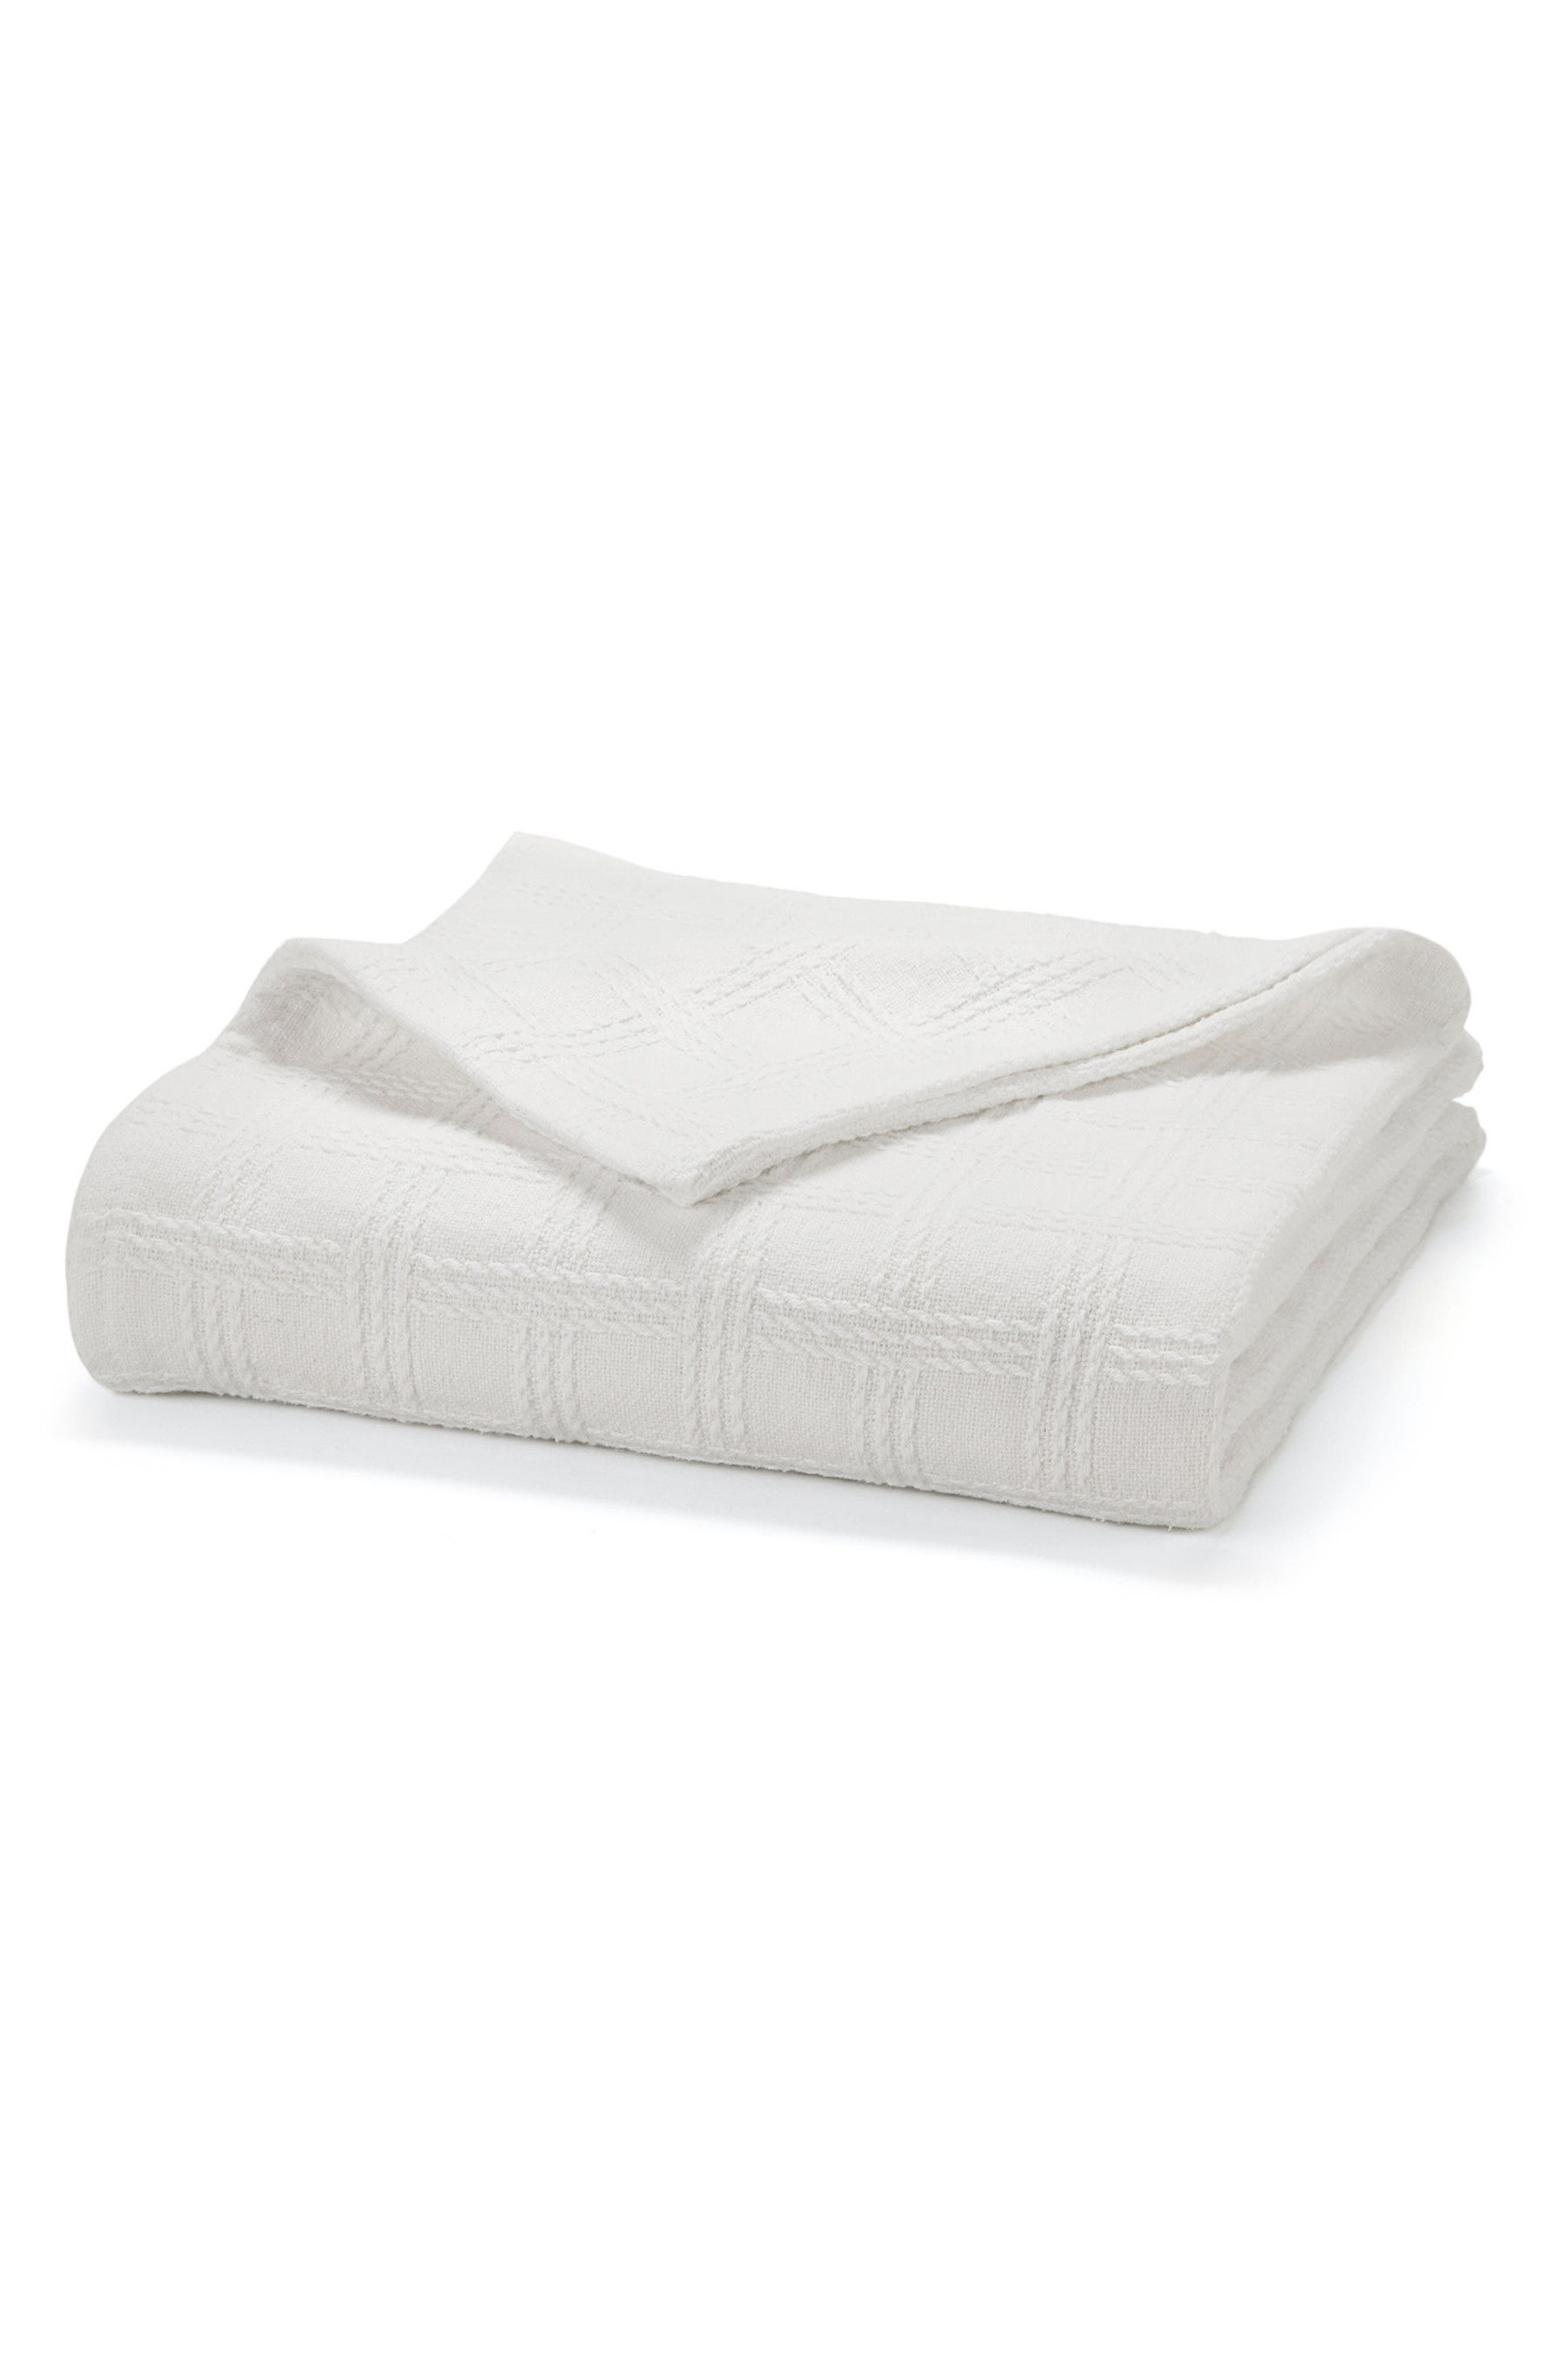 Classic Cotton Twin Size Blanket,                         Main,                         color, 100